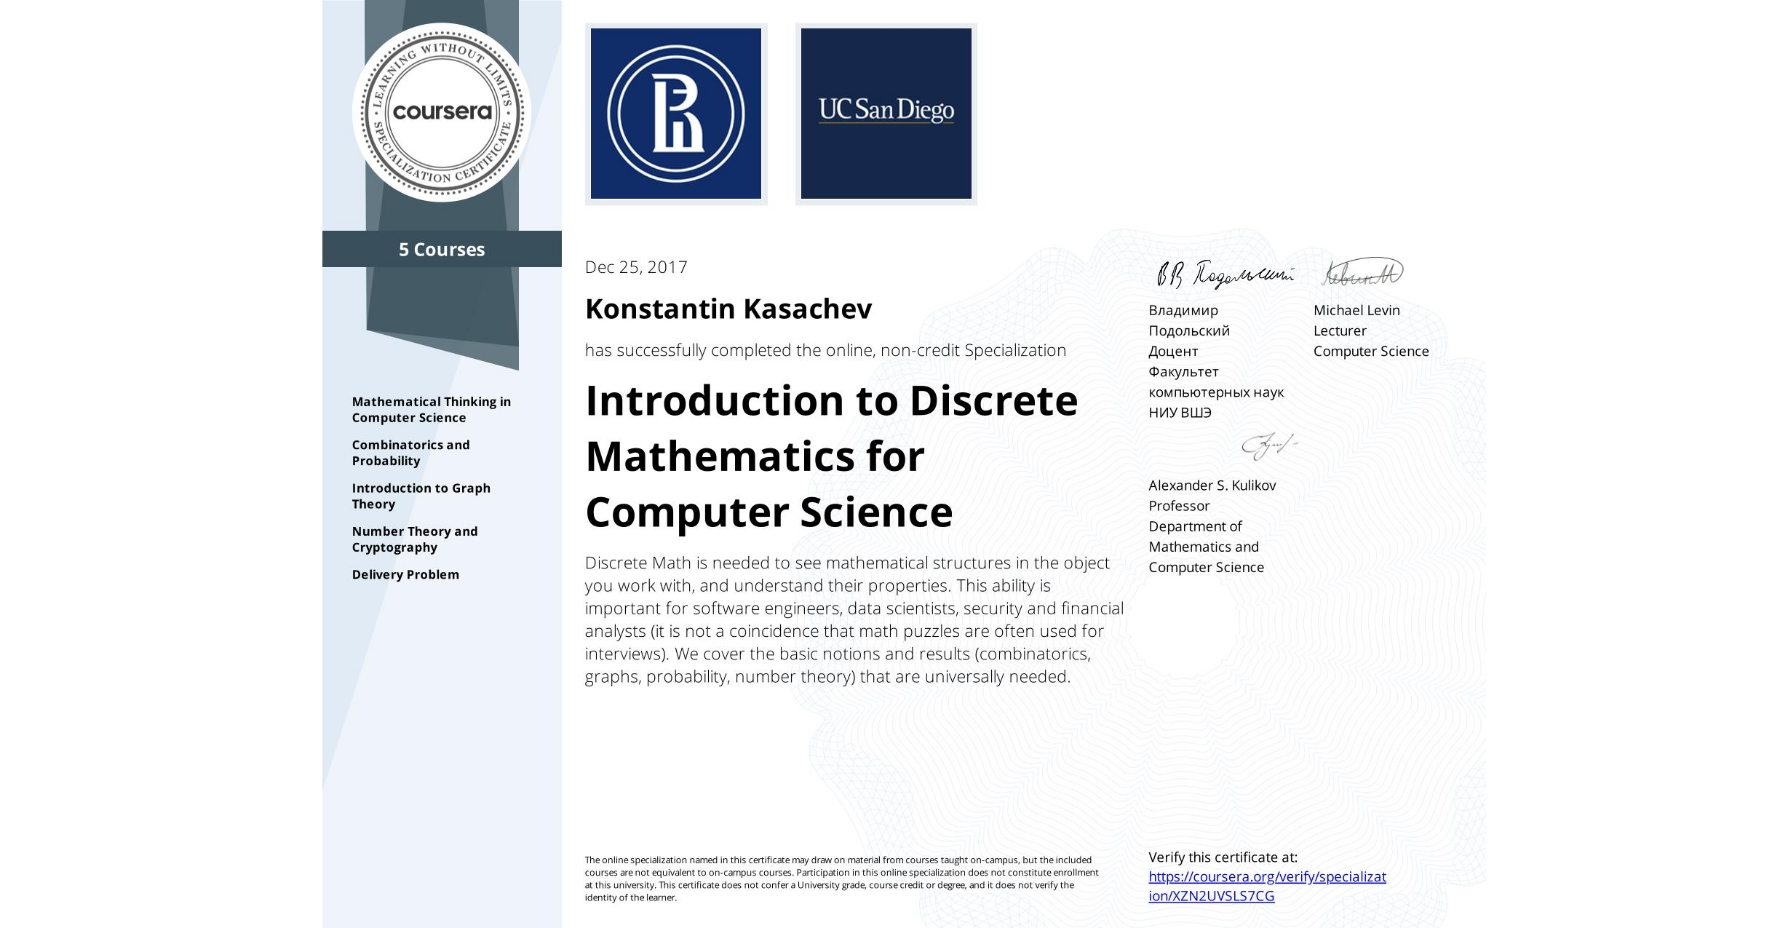 View certificate for Konstantin Kasachev, Introduction to Discrete Mathematics for Computer Science, offered through Coursera. Discrete Math is needed to see mathematical structures in the object you work with, and understand their properties. This ability is important for software engineers, data scientists, security and financial analysts (it is not a coincidence that math puzzles are often used for interviews). We cover the basic notions and results (combinatorics, graphs, probability, number theory) that are universally needed.